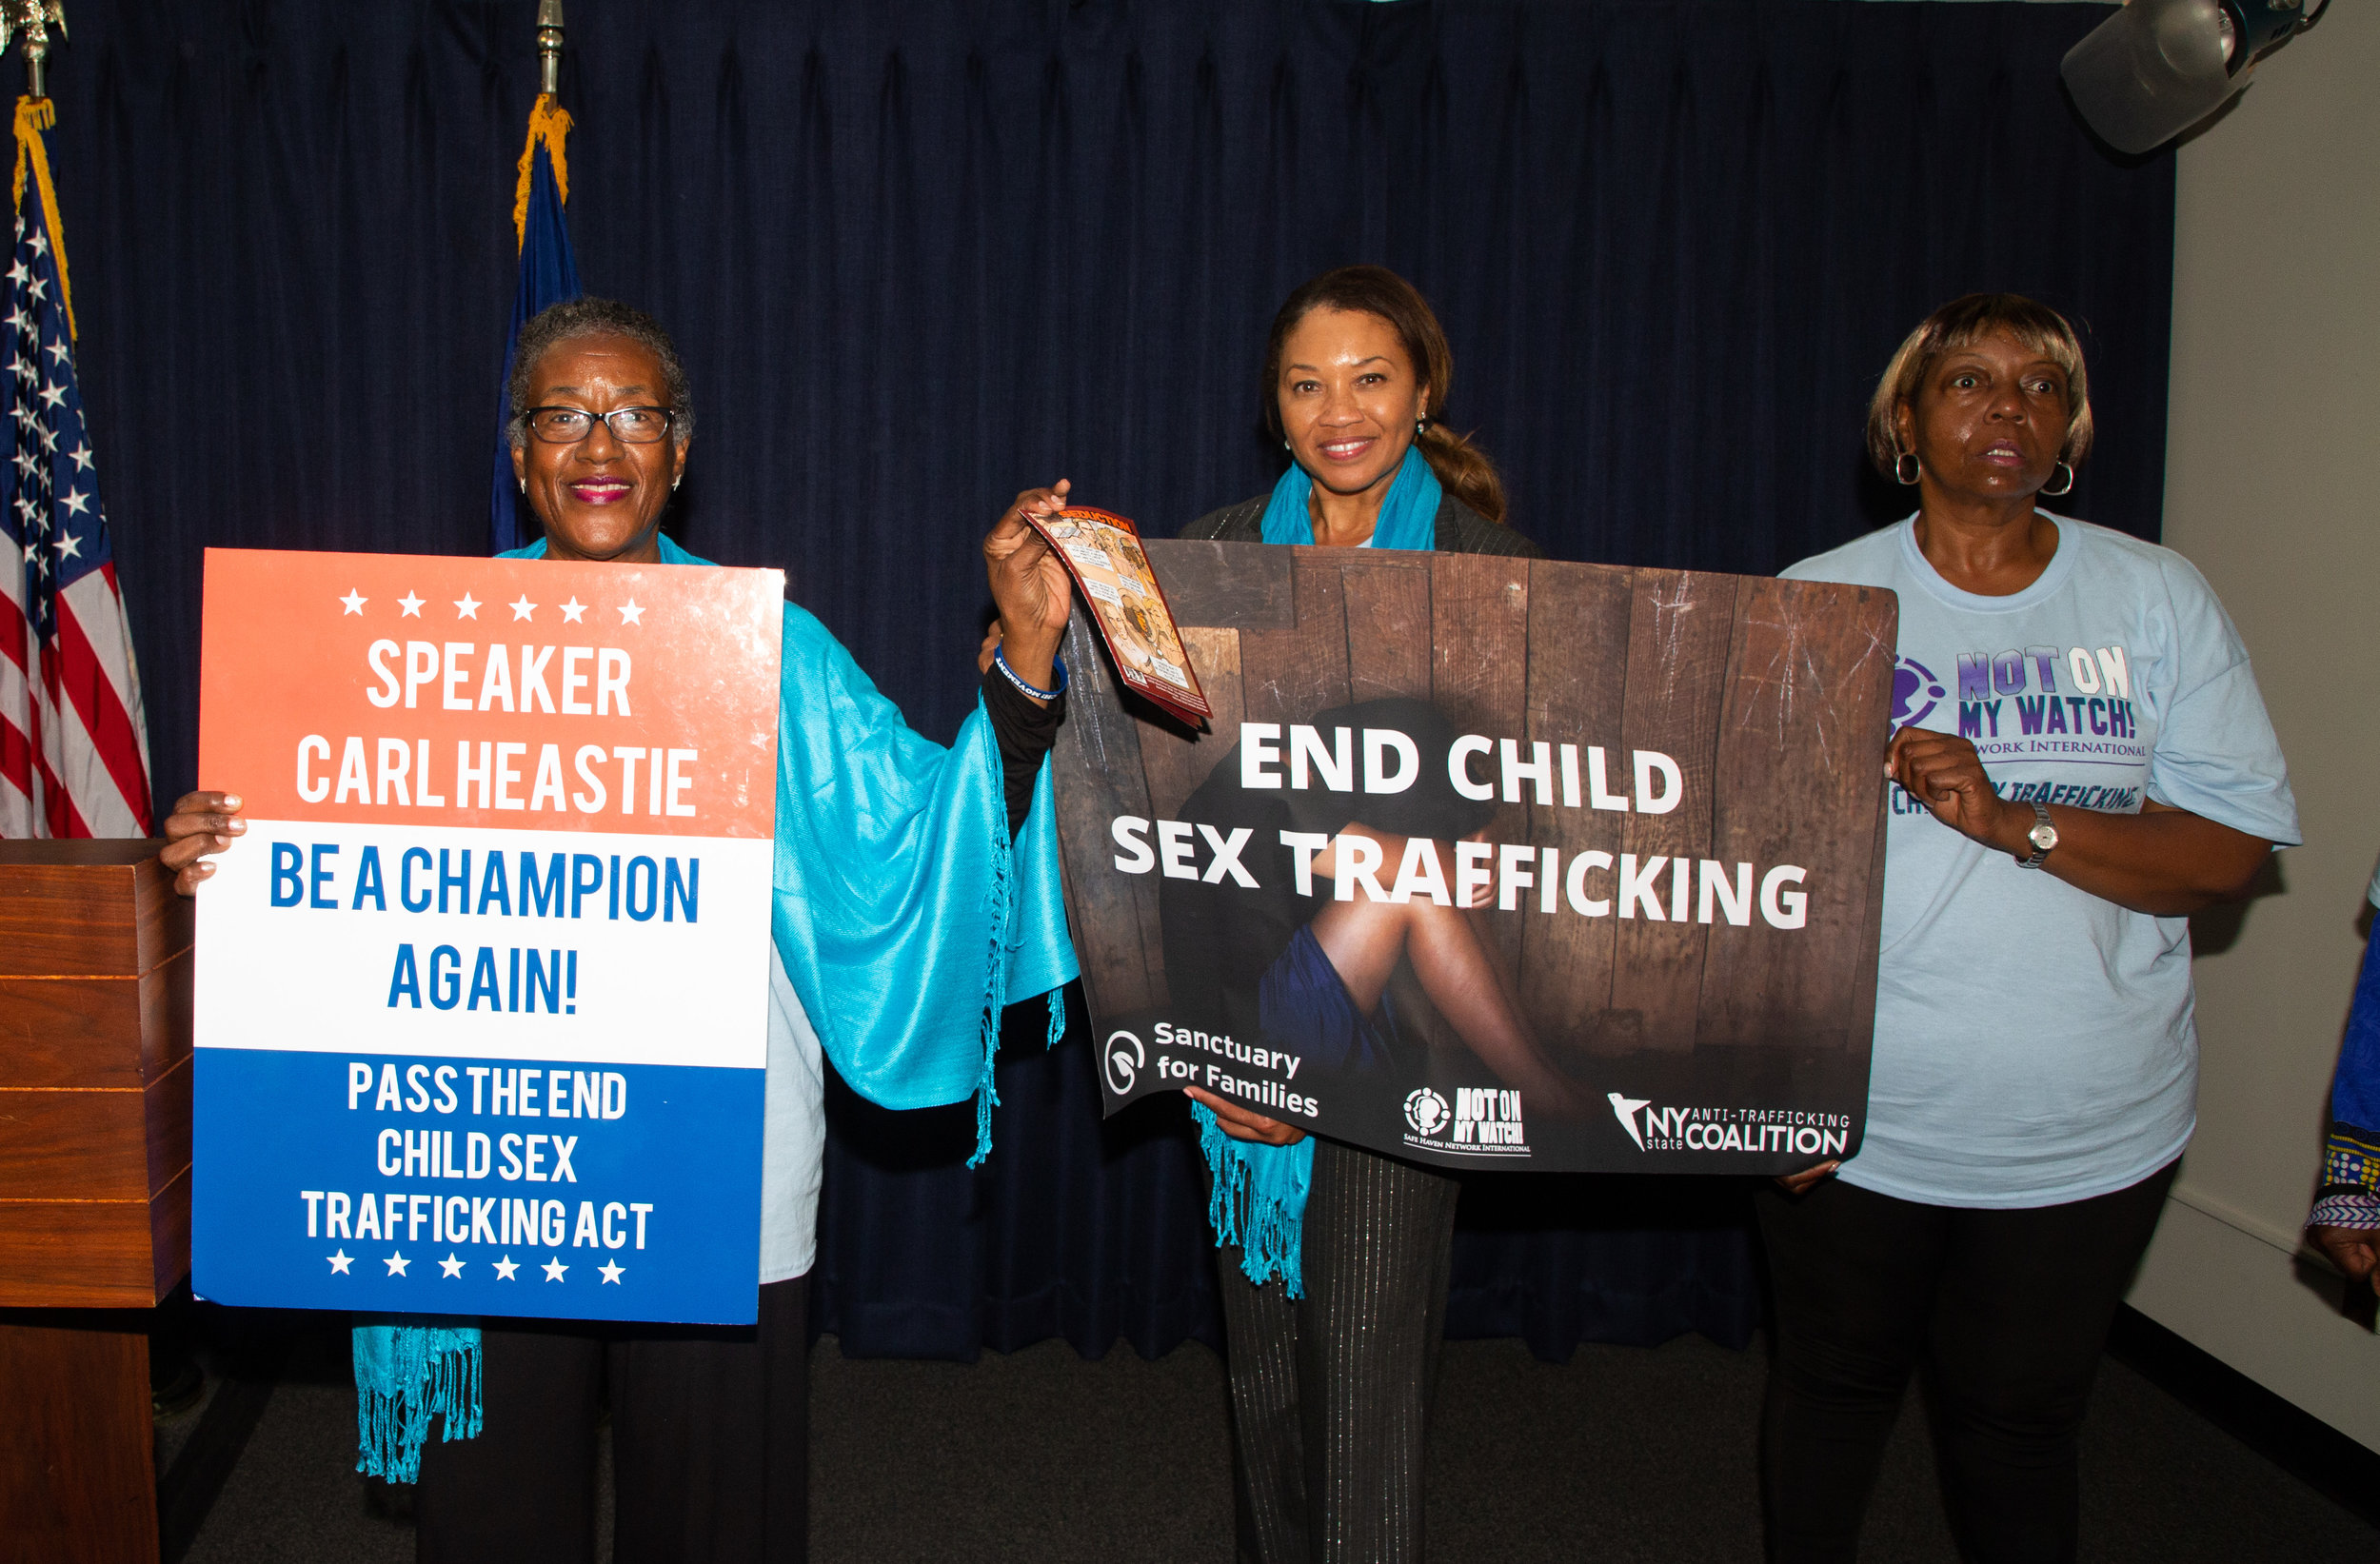 The National Organization for Women, Sanctuary for Families, Women's Justice NOW, and Not on My Watch hold a Lobby Day to End Child Sex Trafficking at the New York State Capitol.